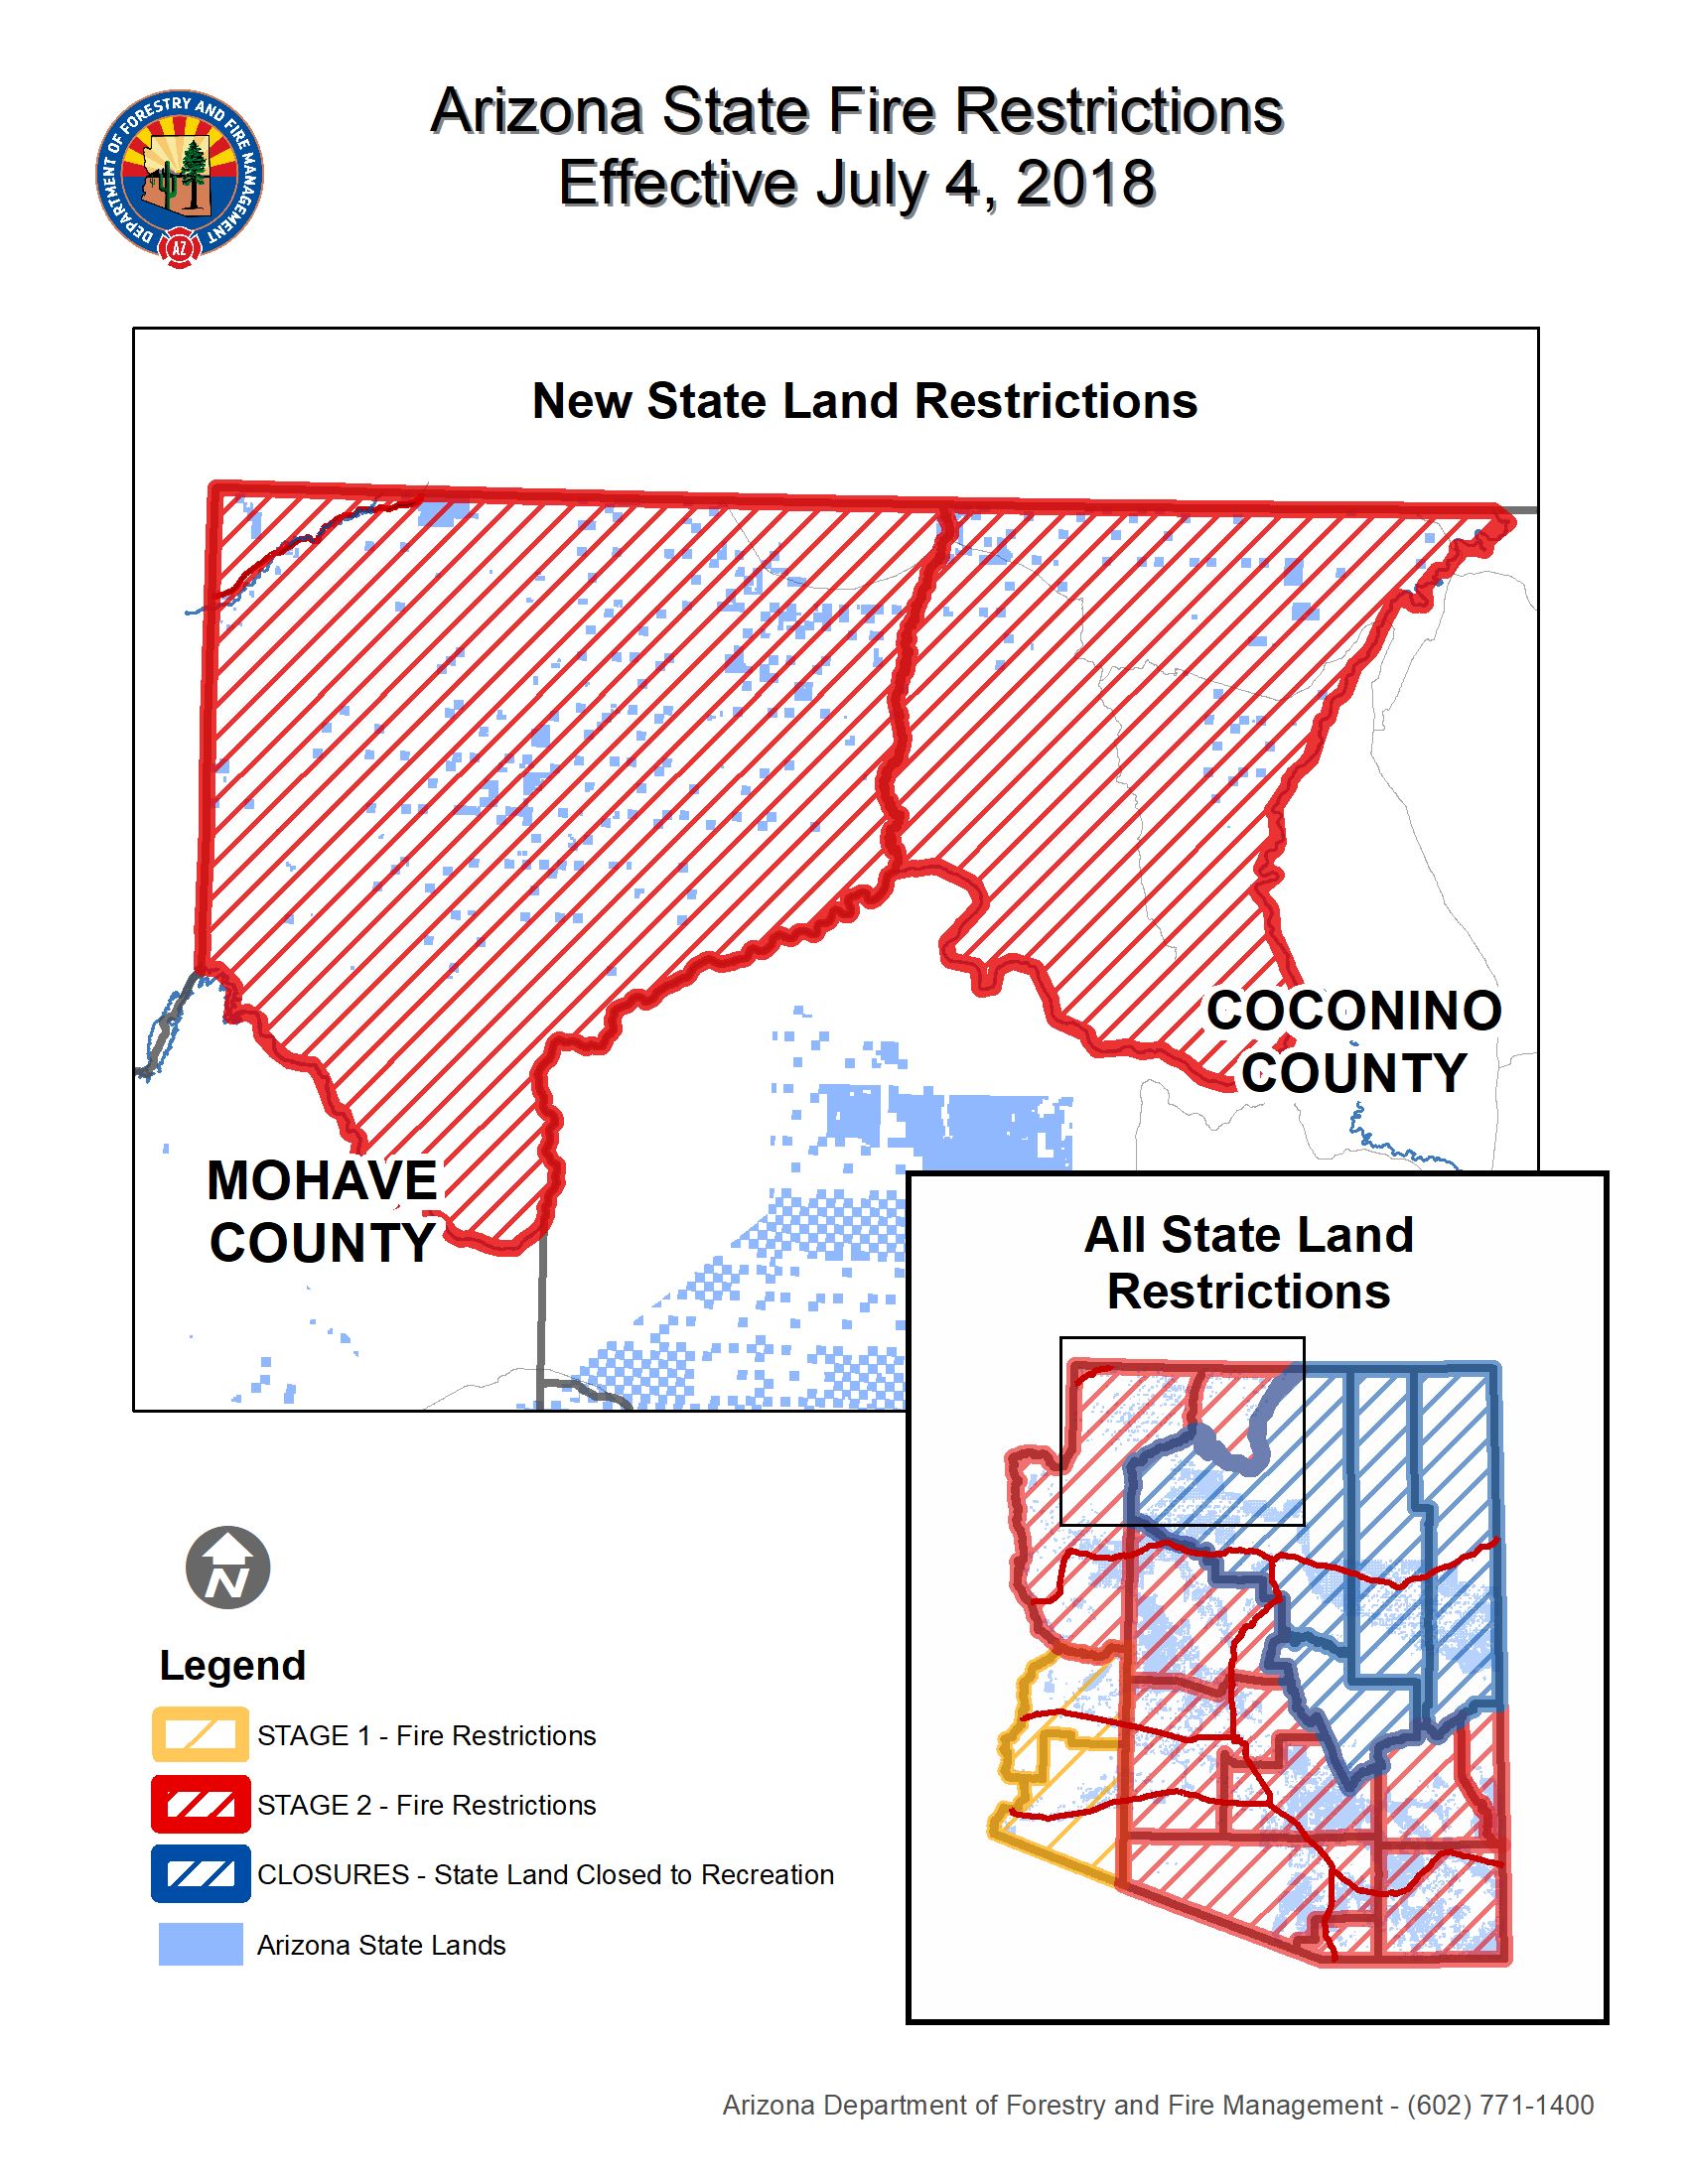 Fire Restrictions Map as of July 4, 2018